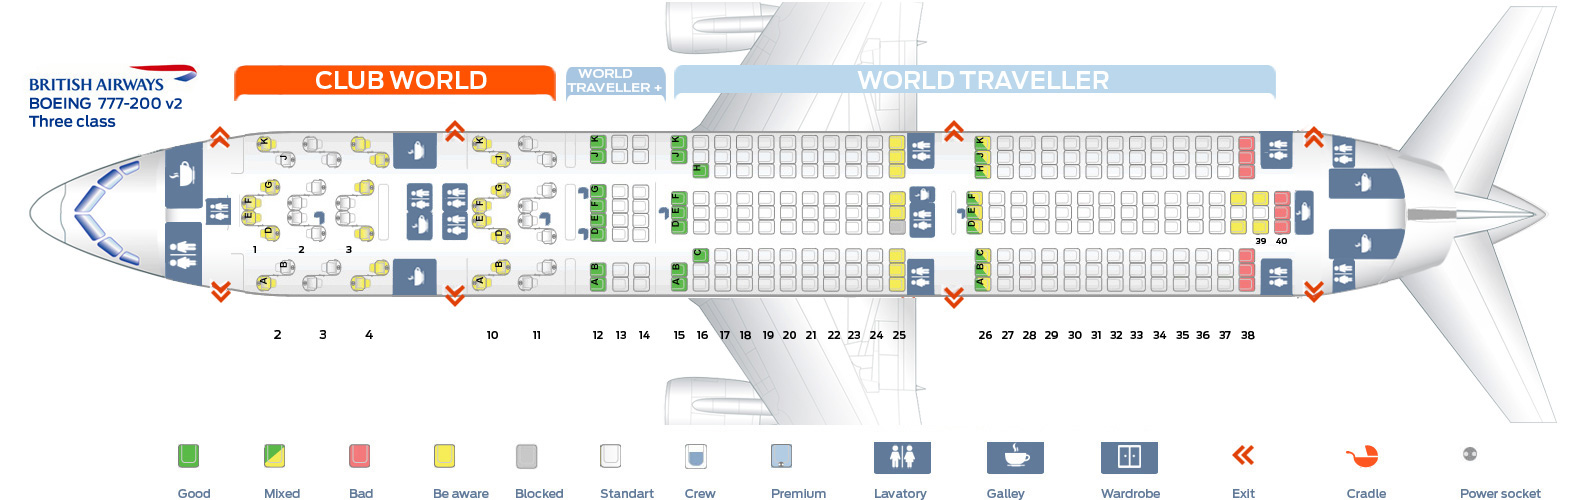 british airways seating assignment